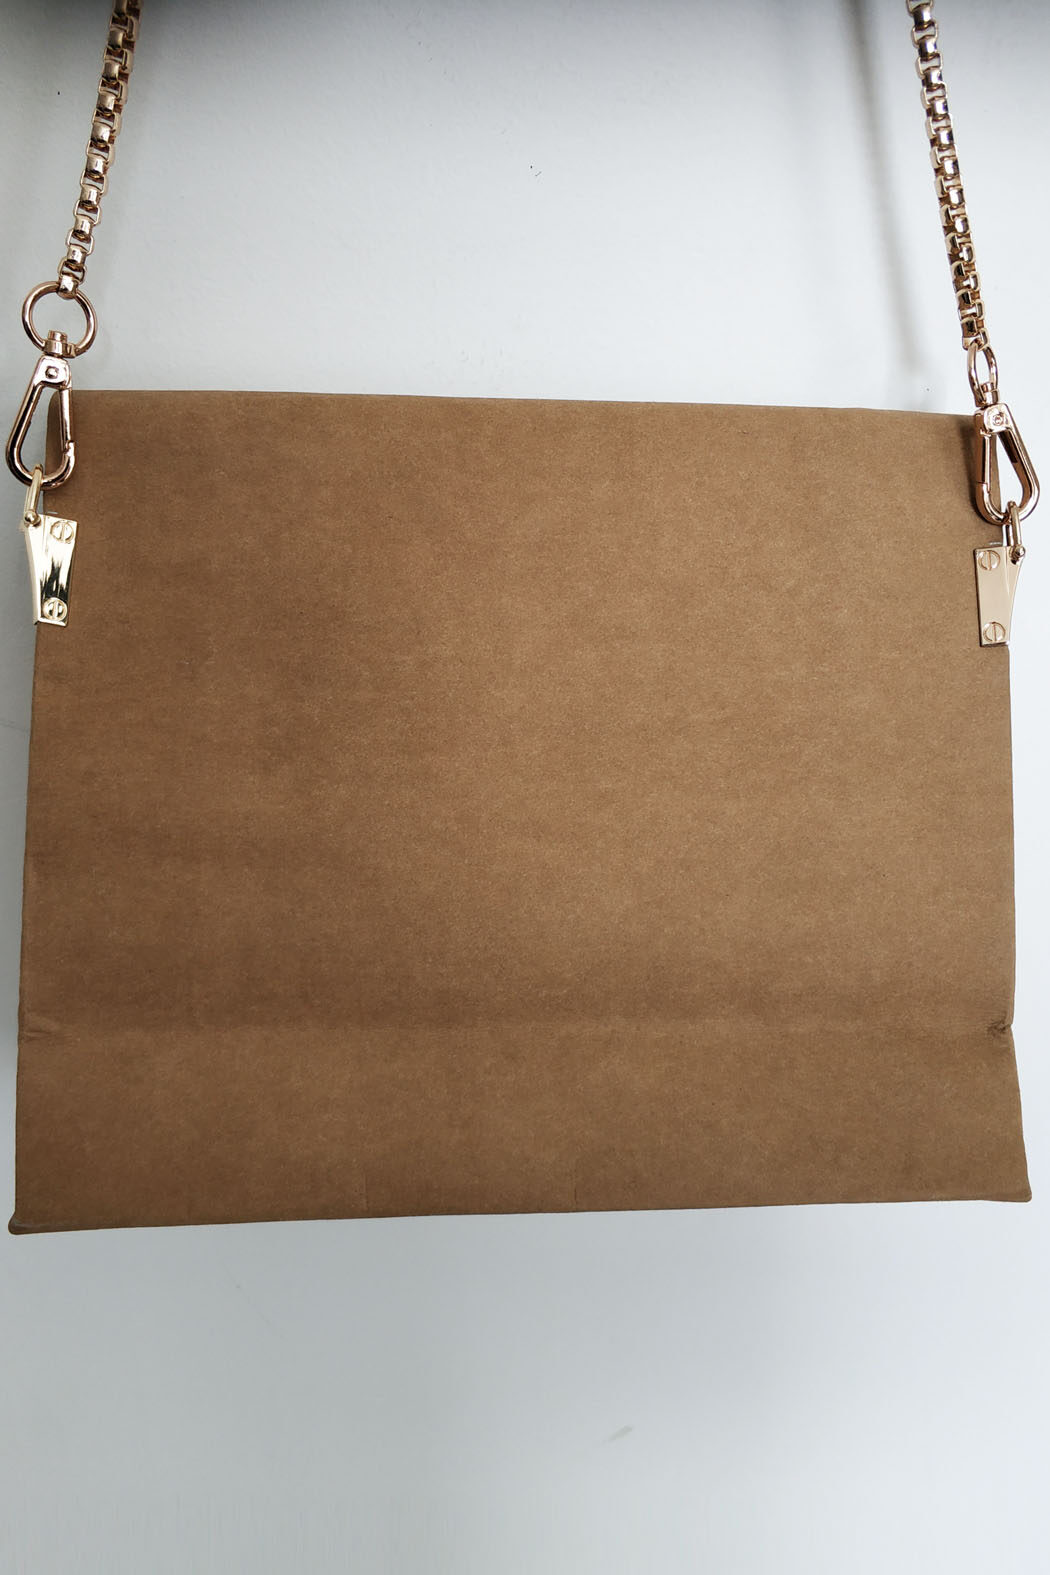 TAN KRAFT BAG